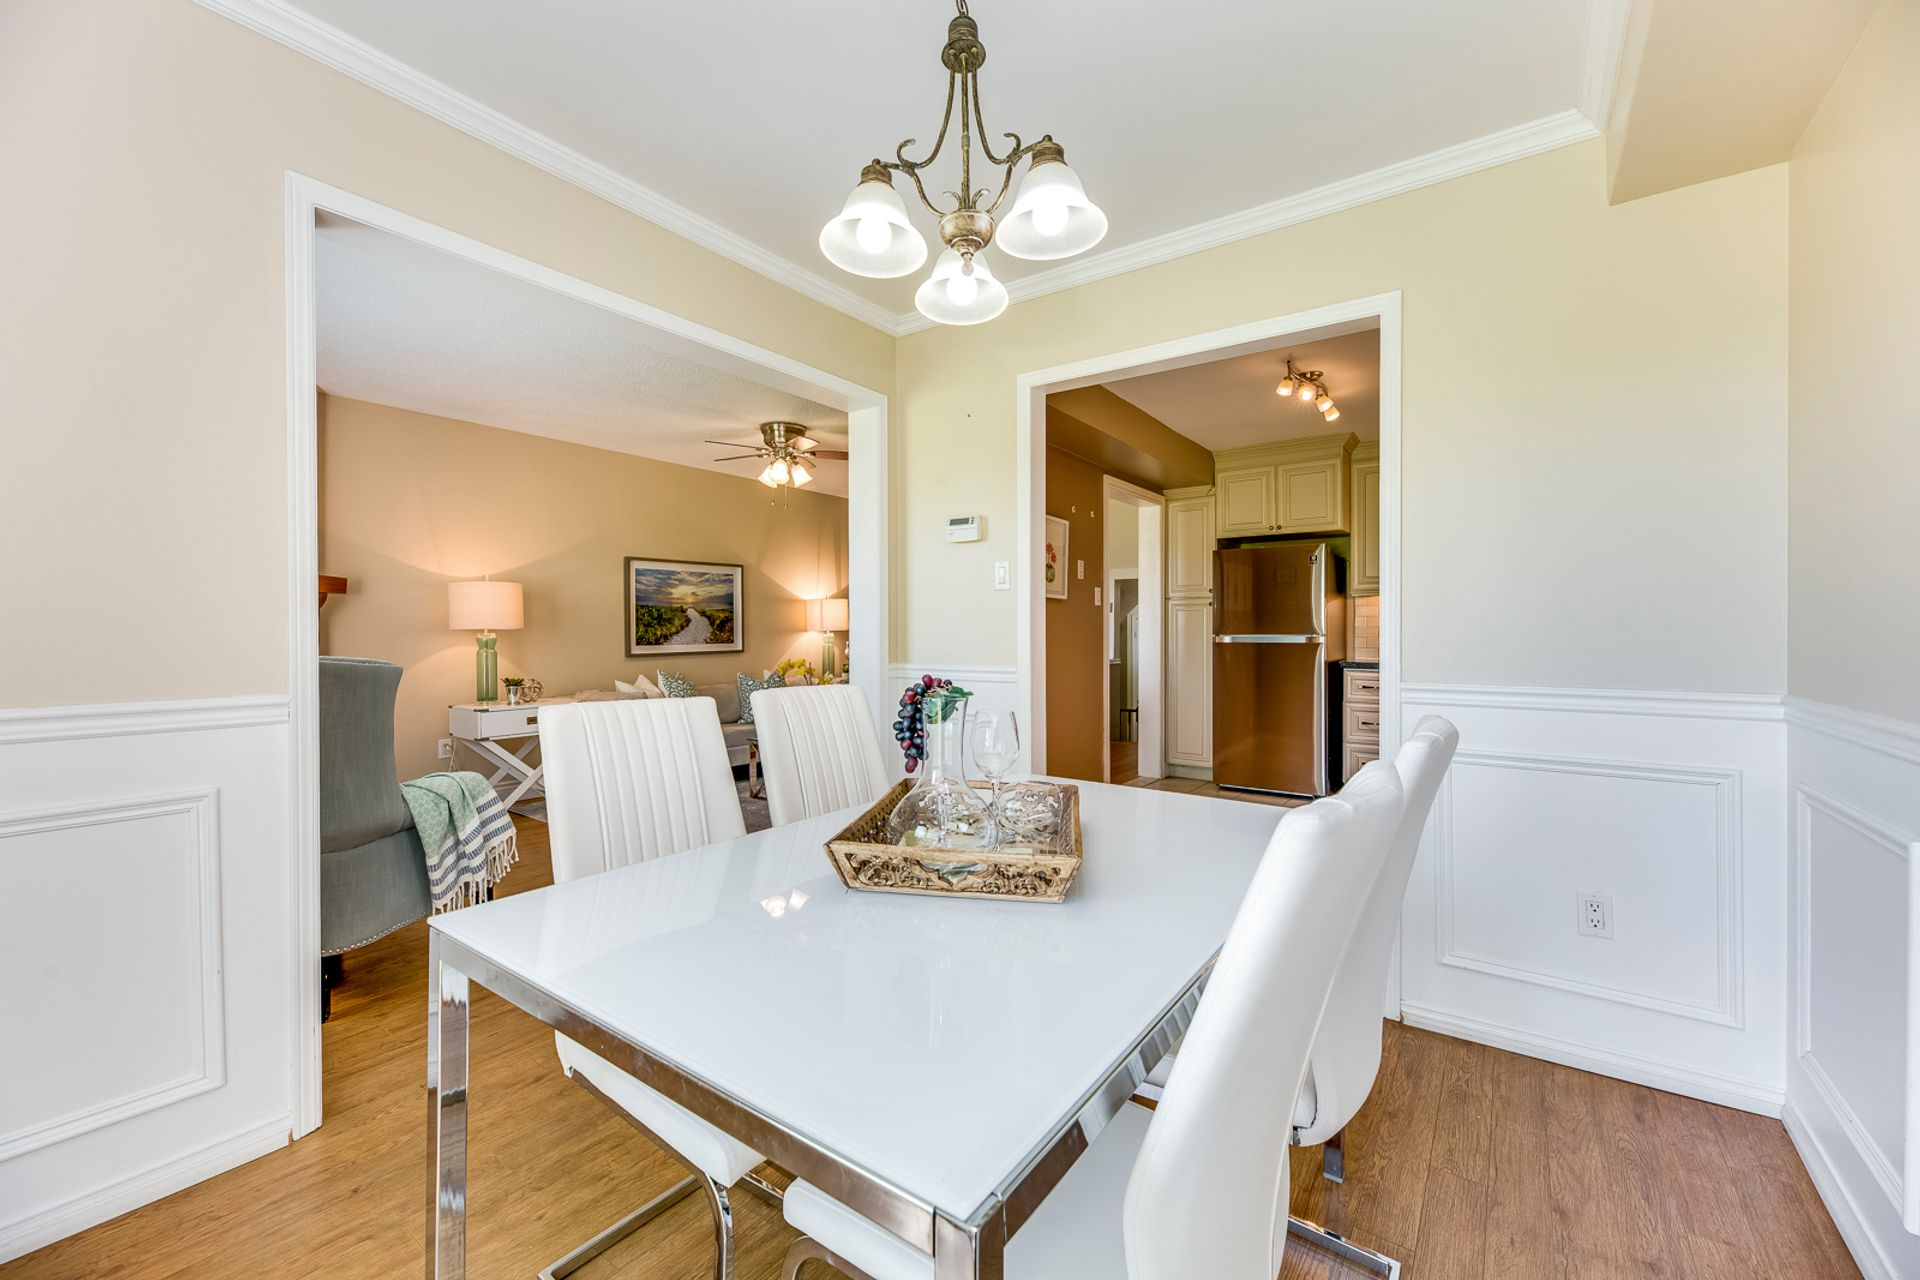 Dining Room - 33 - 4605 Donegal Dr, Mississauga - Elite3 & Team at 33 - 4605 Donegal Drive, Erin Mills, Mississauga